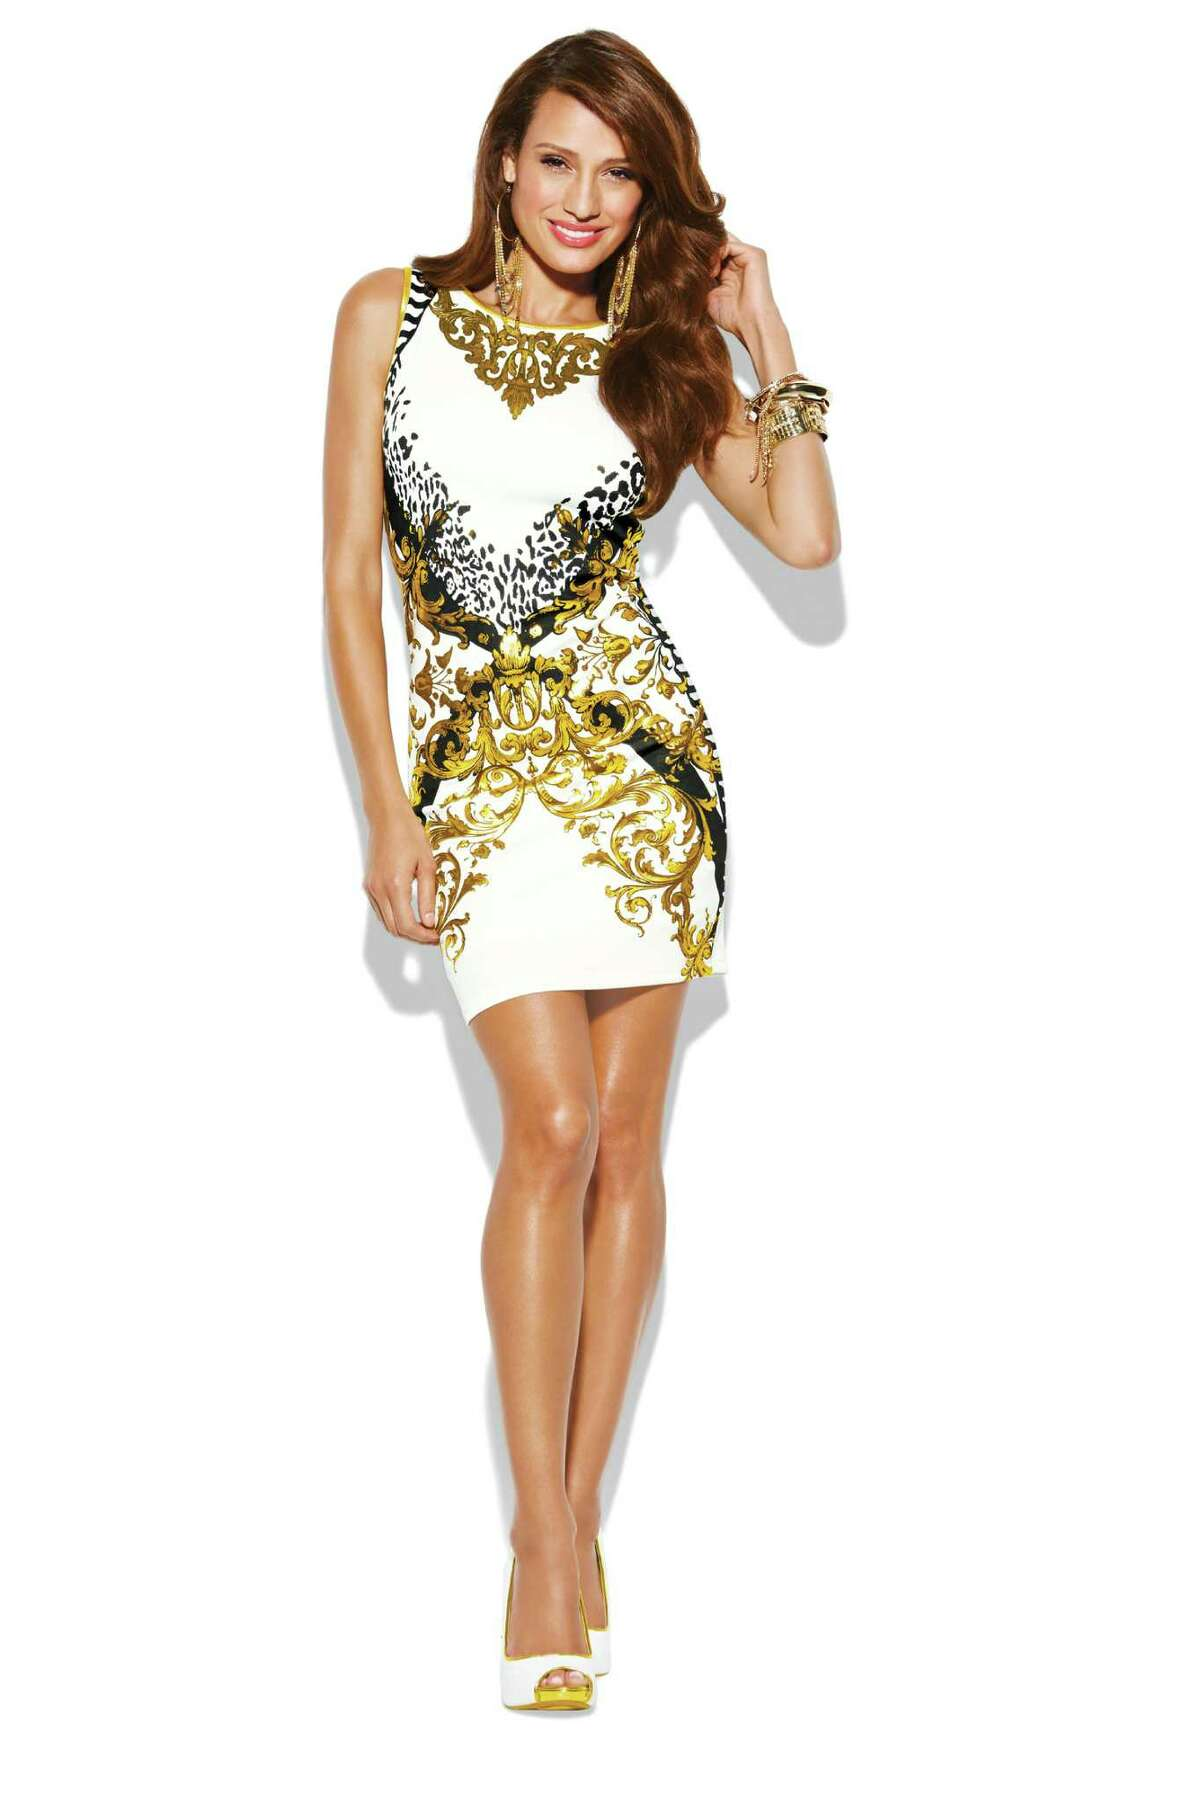 All dresses are $89.50-$99.50 and available at Macy's and macys.com